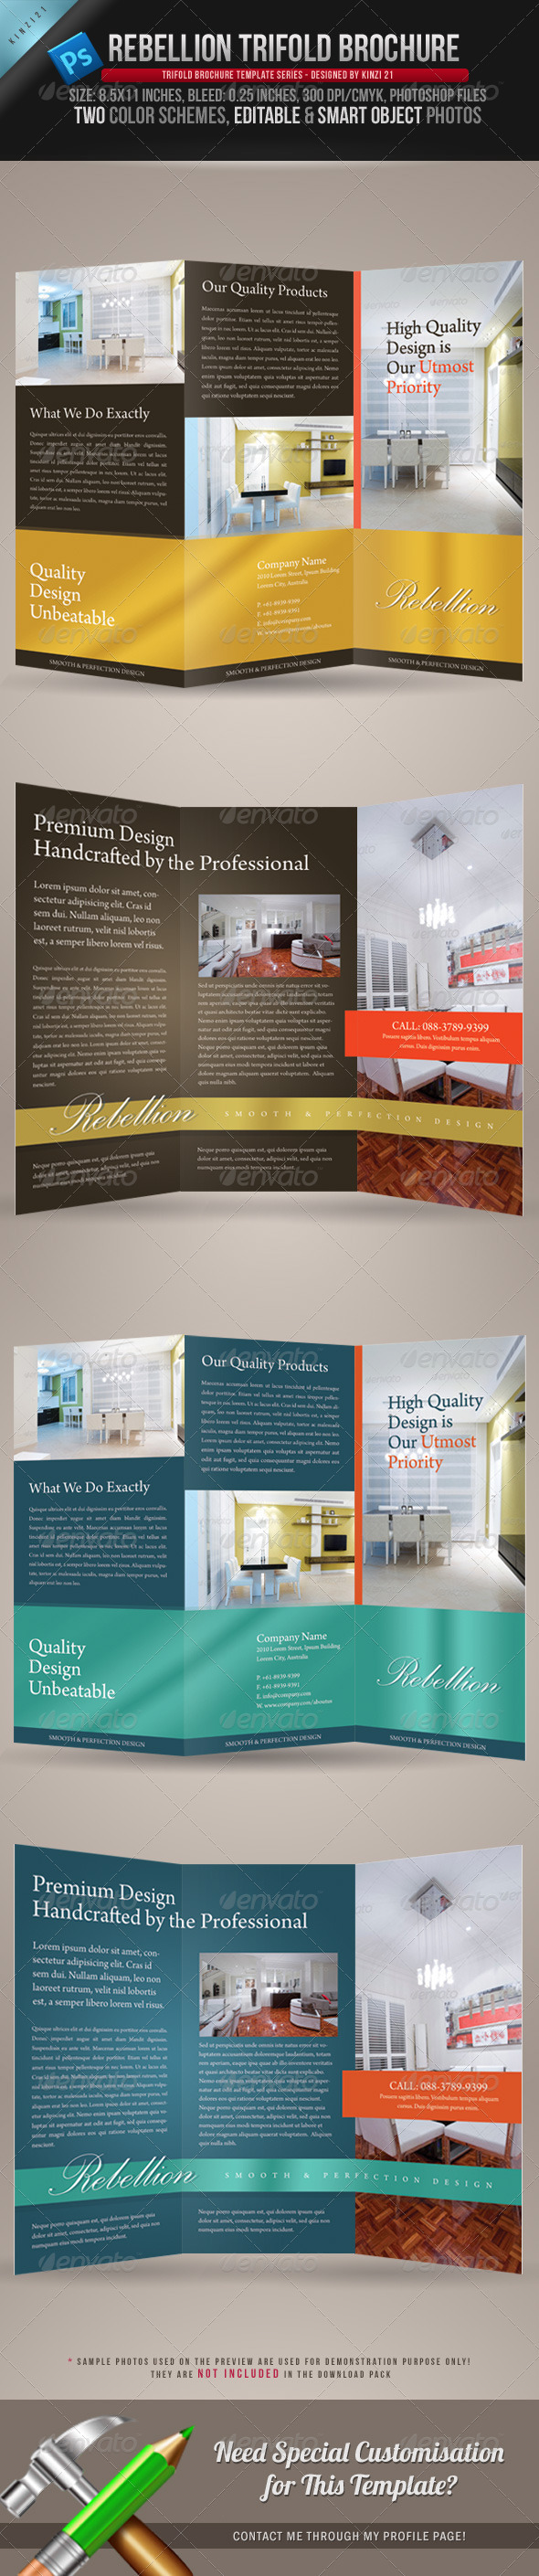 Rebellion Trifold Brochure - PSD Template - Corporate Brochures